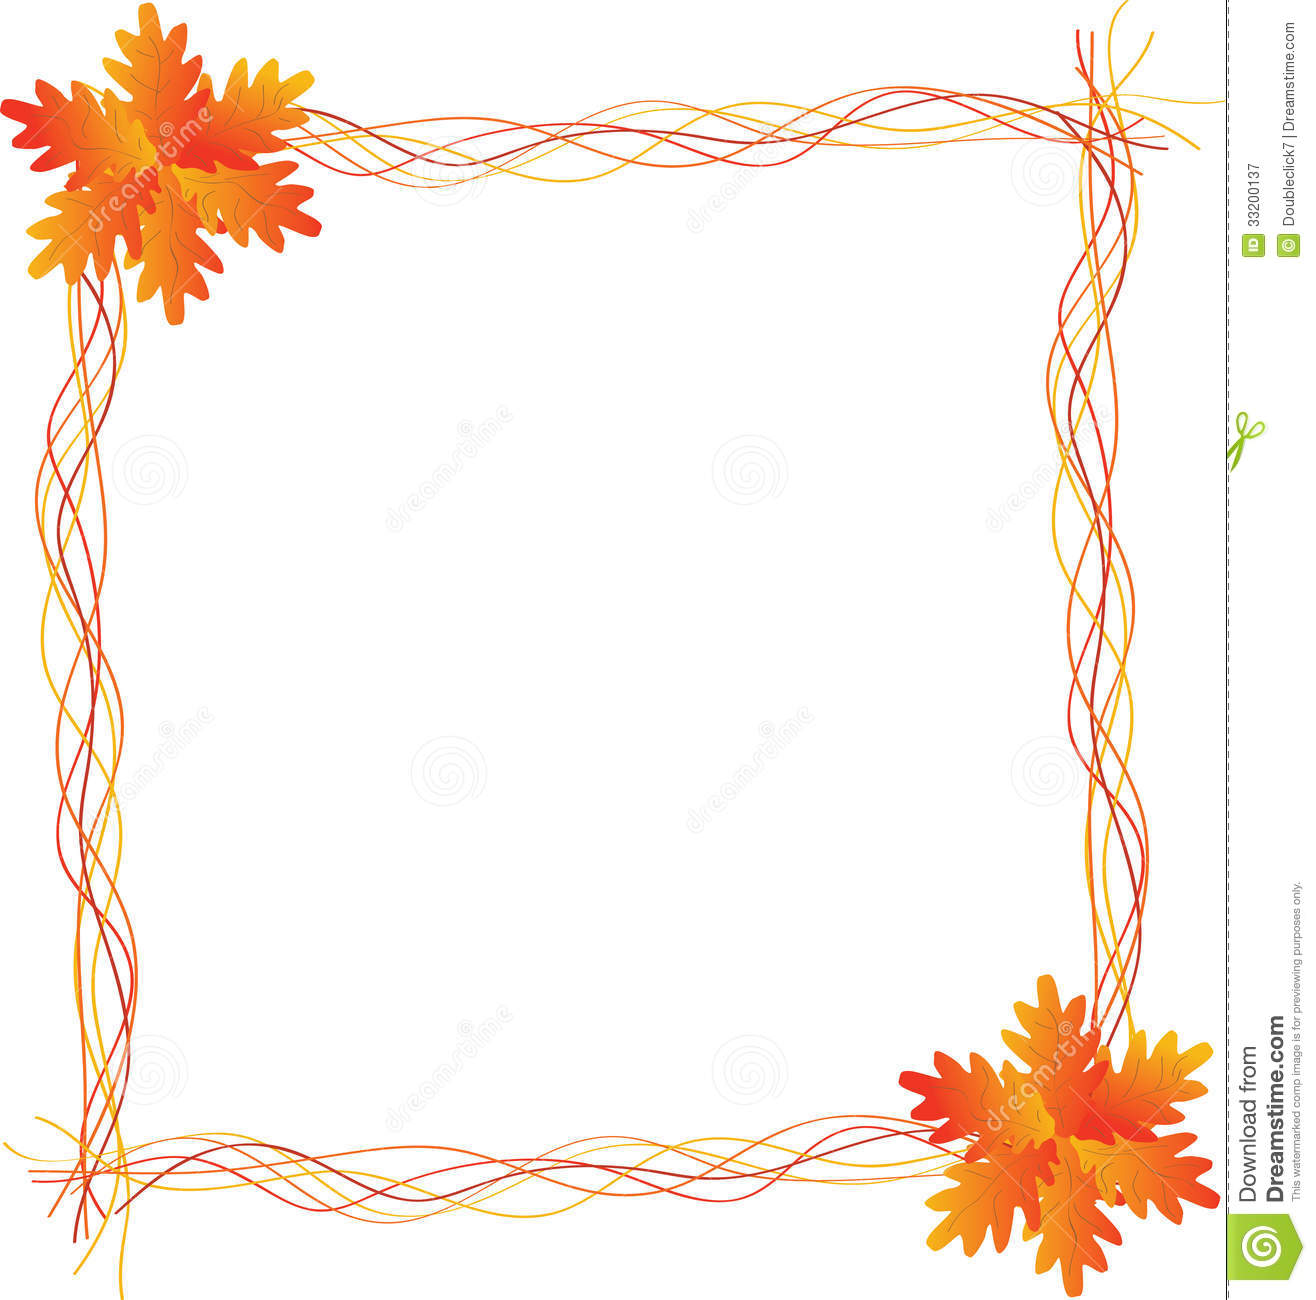 Autumn Leaf Frame Royalty Free Stock Photography